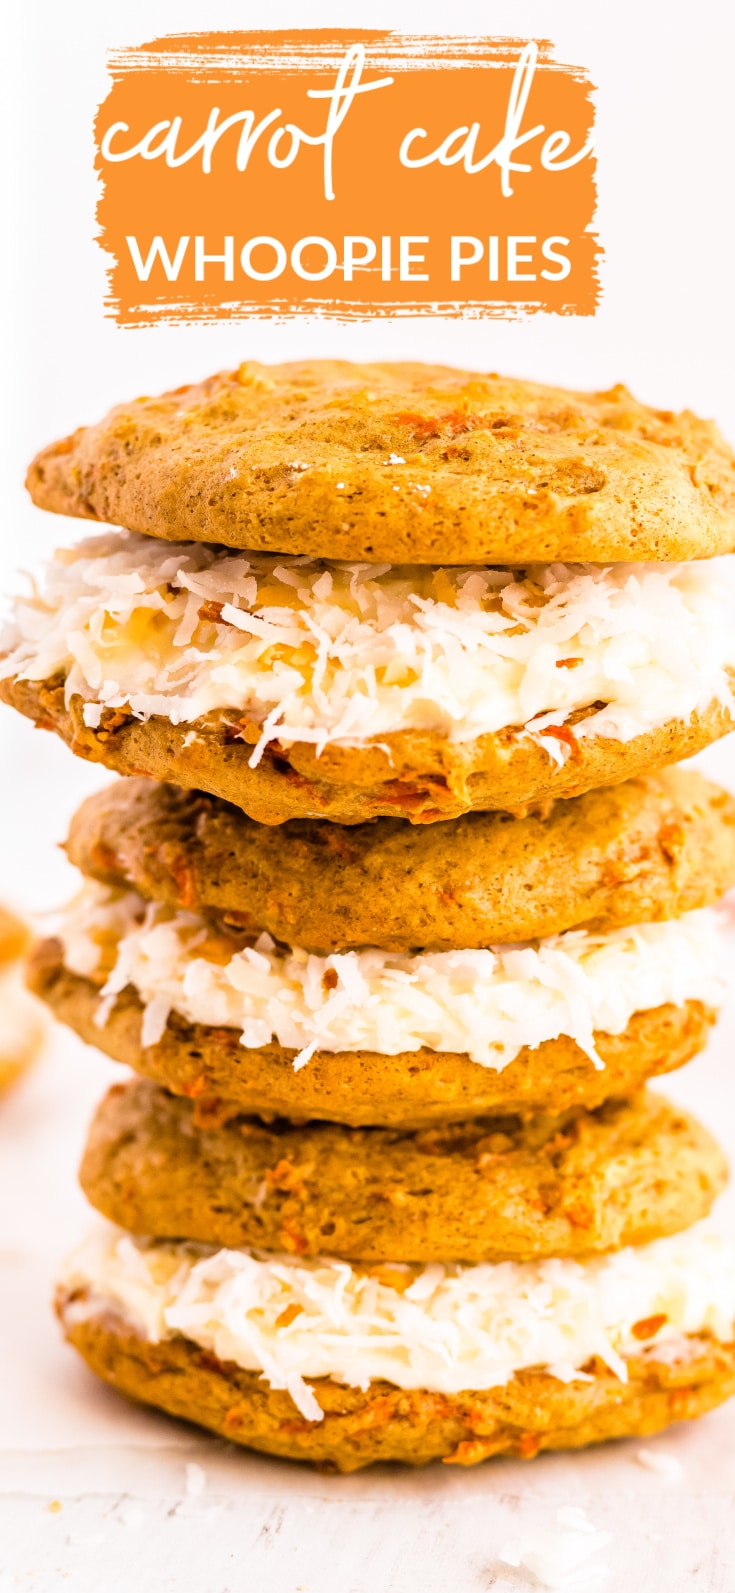 This Carrot Cake Whoopie Pies recipe is the perfect dessert for spring. It's everything you love about carrot cake but more compact. It's a little bit cookie, it's a little bit cake, and it's a whole lot of deliciousness! via @foodfolksandfun